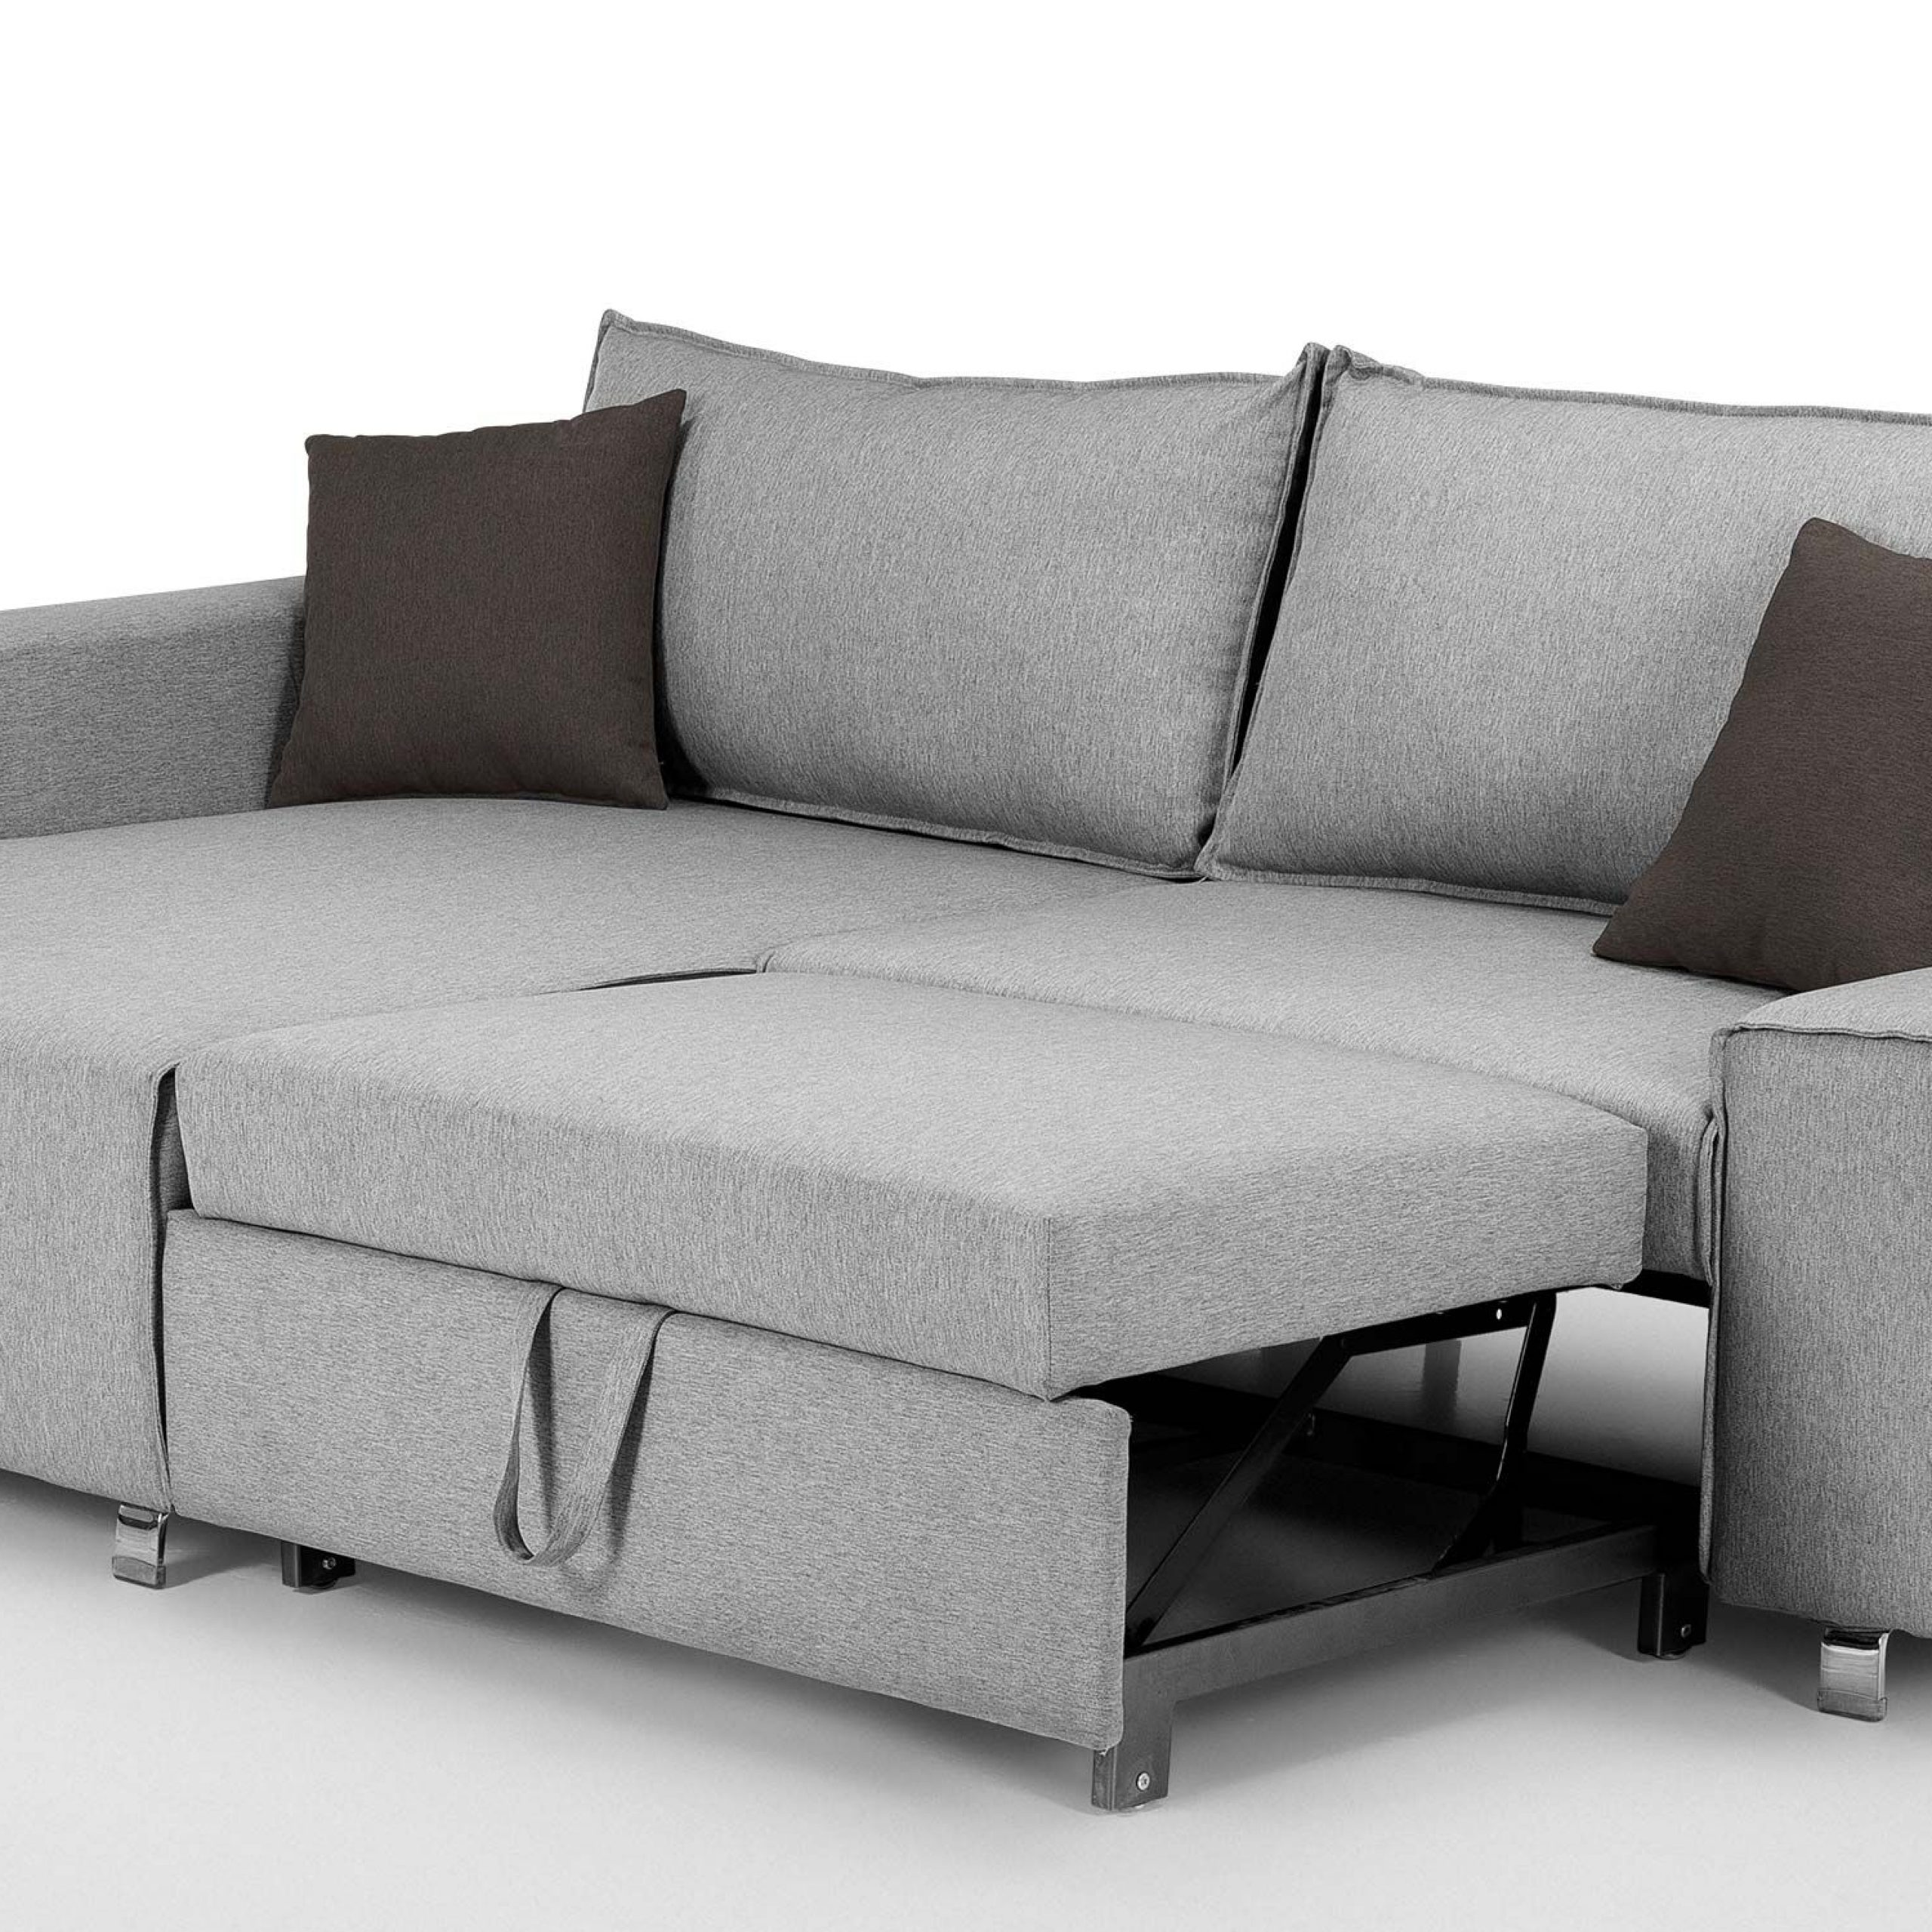 Widely Used Mayne Right Hand Facing Corner Sofa Bed, Clear Grey Stone Throughout Dulce Right Sectional Sofas Twill Stone (View 13 of 25)